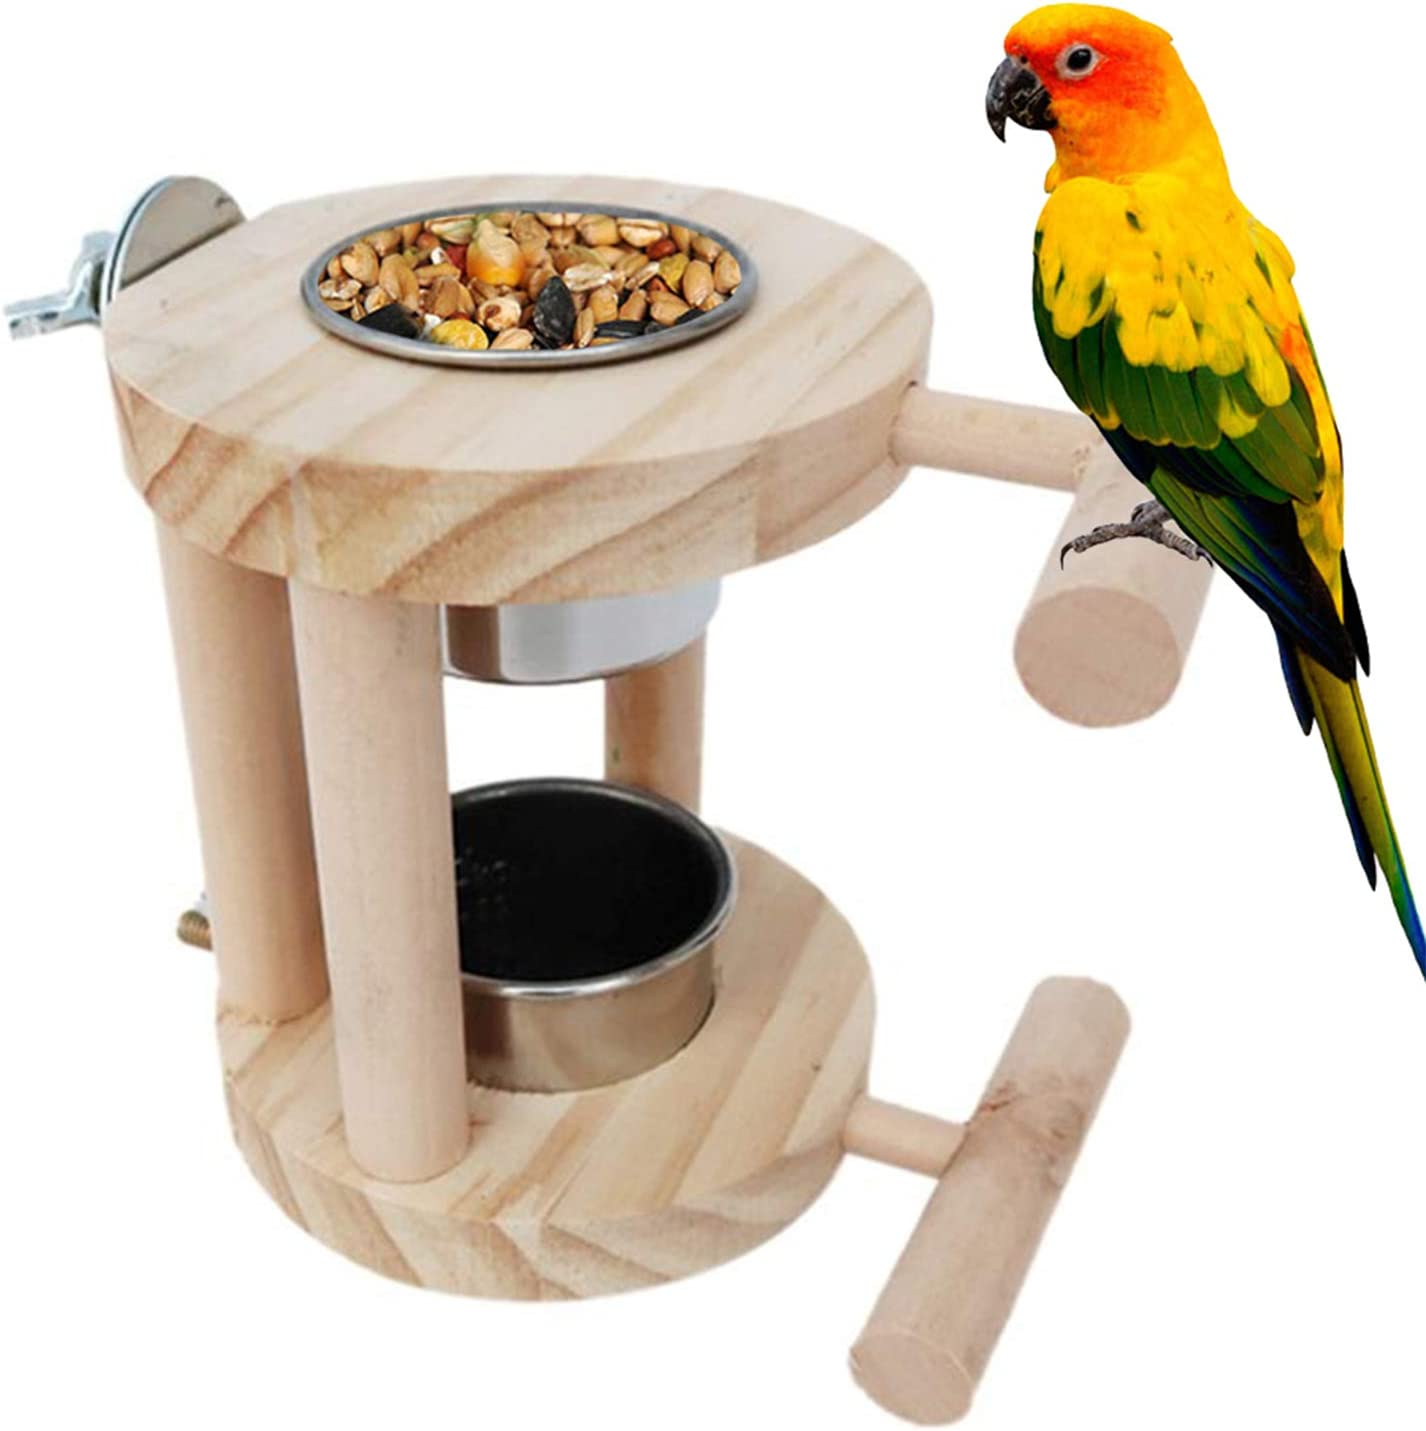 kathson Bird Feeding Cups, Stainless Steel Parrot Food & Water Cage Bowls, Bird Perches Stand Cage Accessories for Parakeet Budgies Fiches Lovebirds